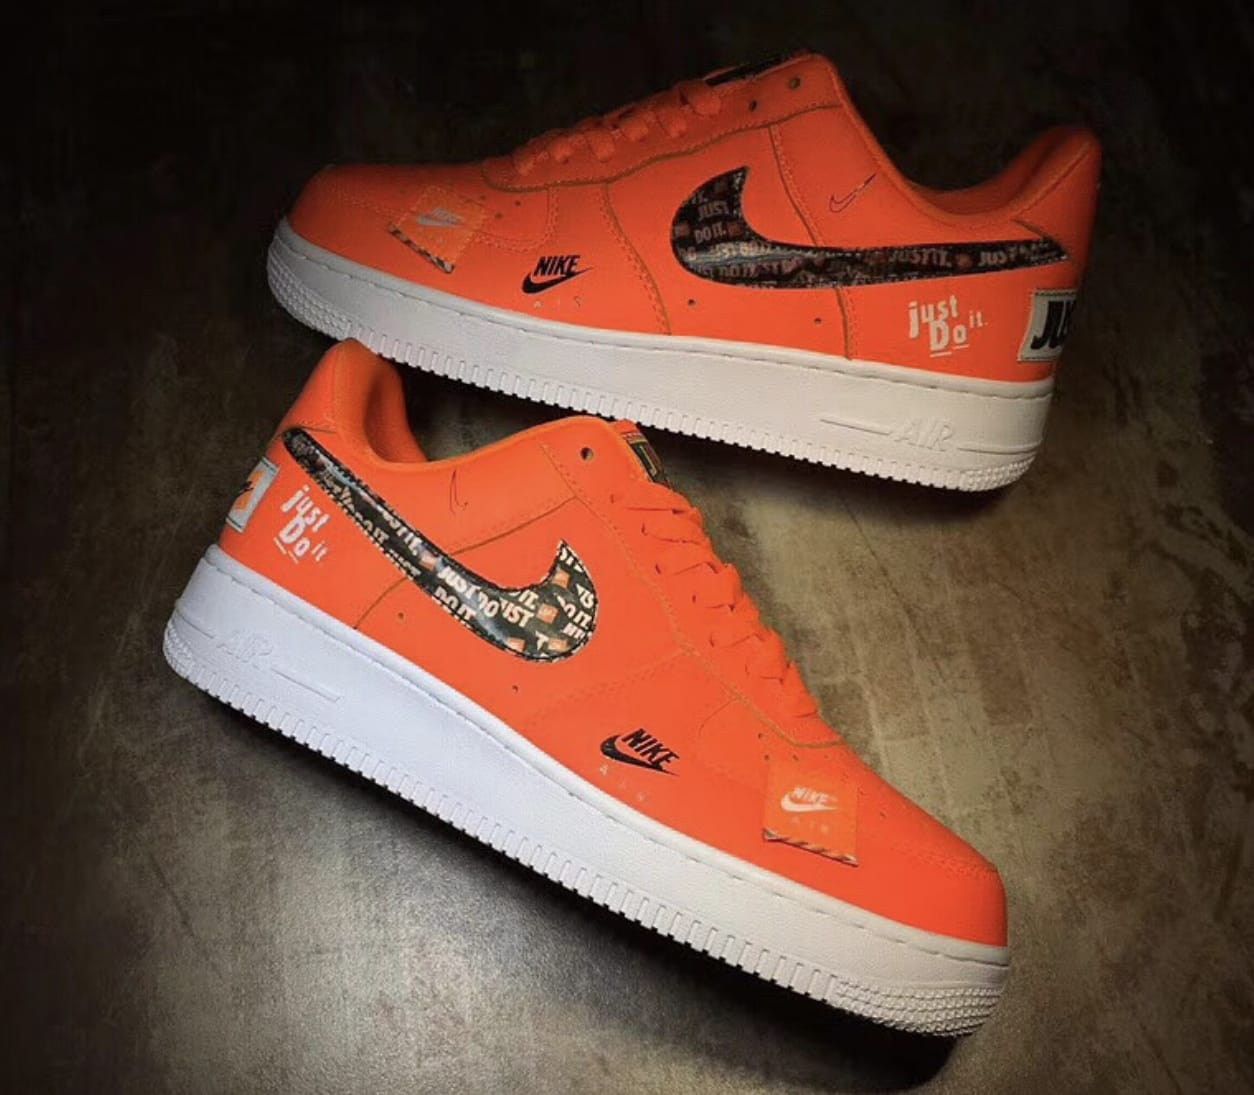 Nike Air Force 1 'Just Do It' Pack (Pair)